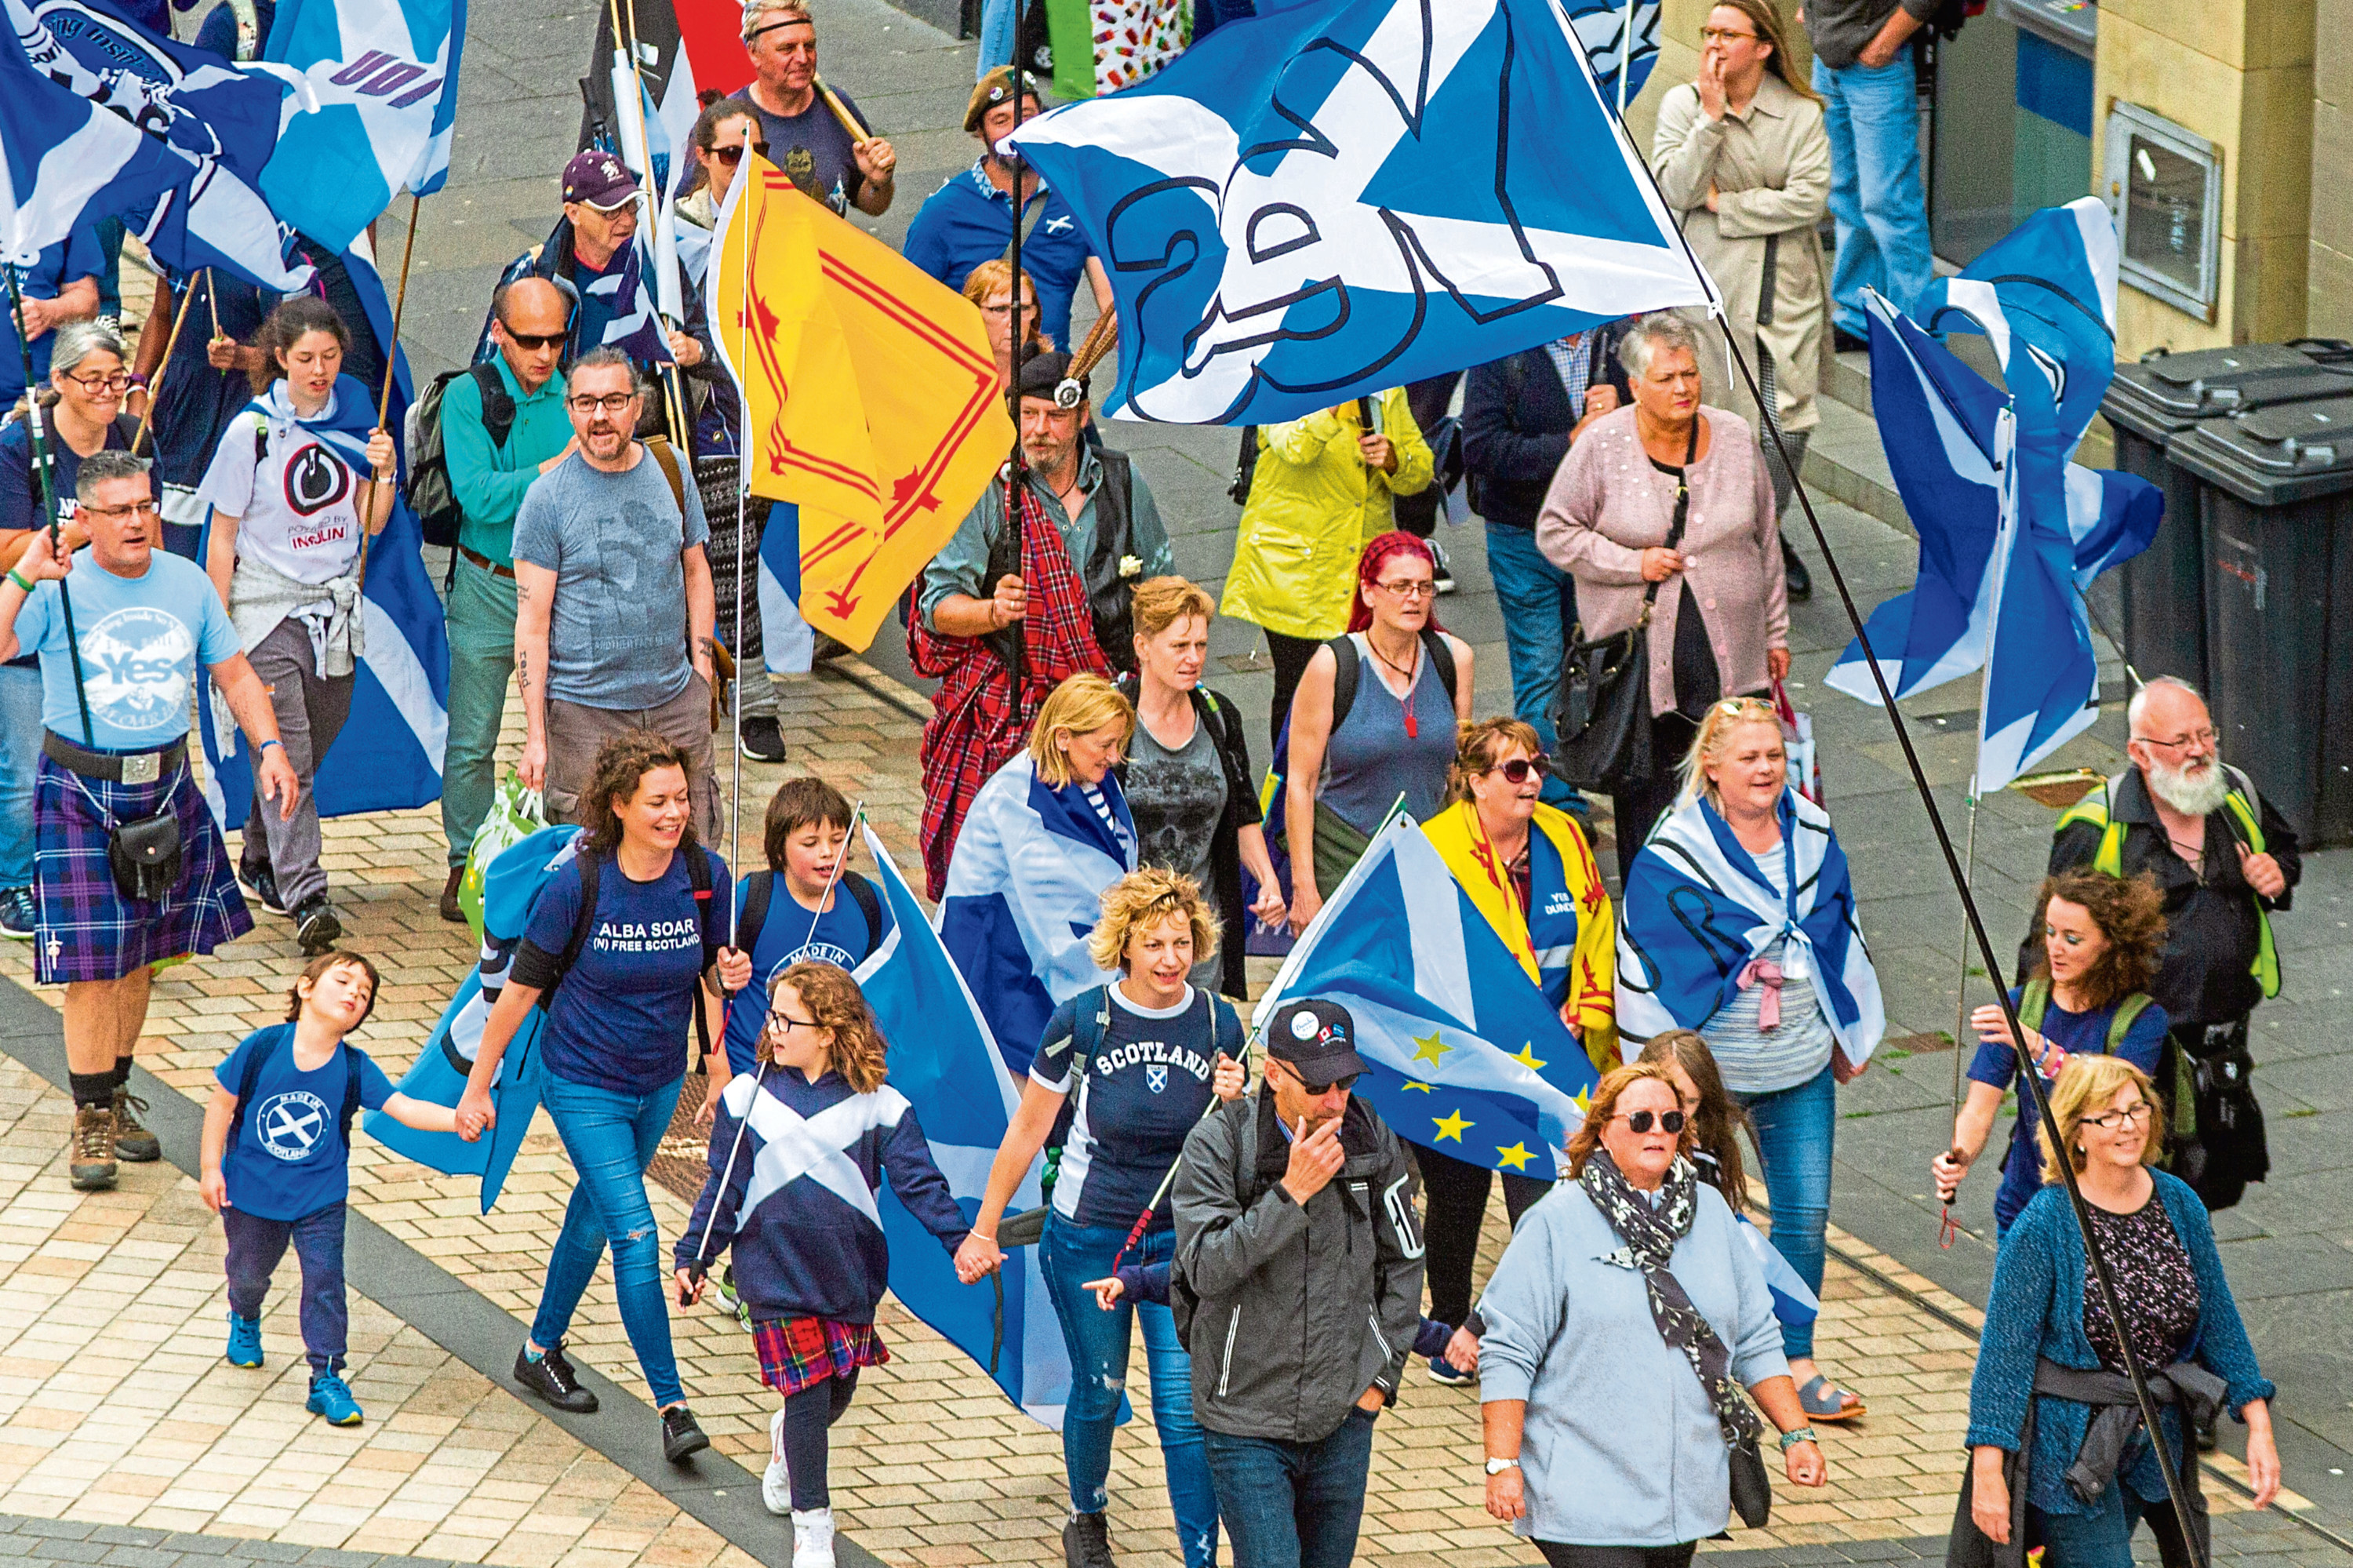 Courier News, Scott Milne Story, CR0003194 All Under One Banner march (independence) through Dundee.  Picture shows scenes from the march. Reform Street, Dundee. Saturday 18th August 2018.